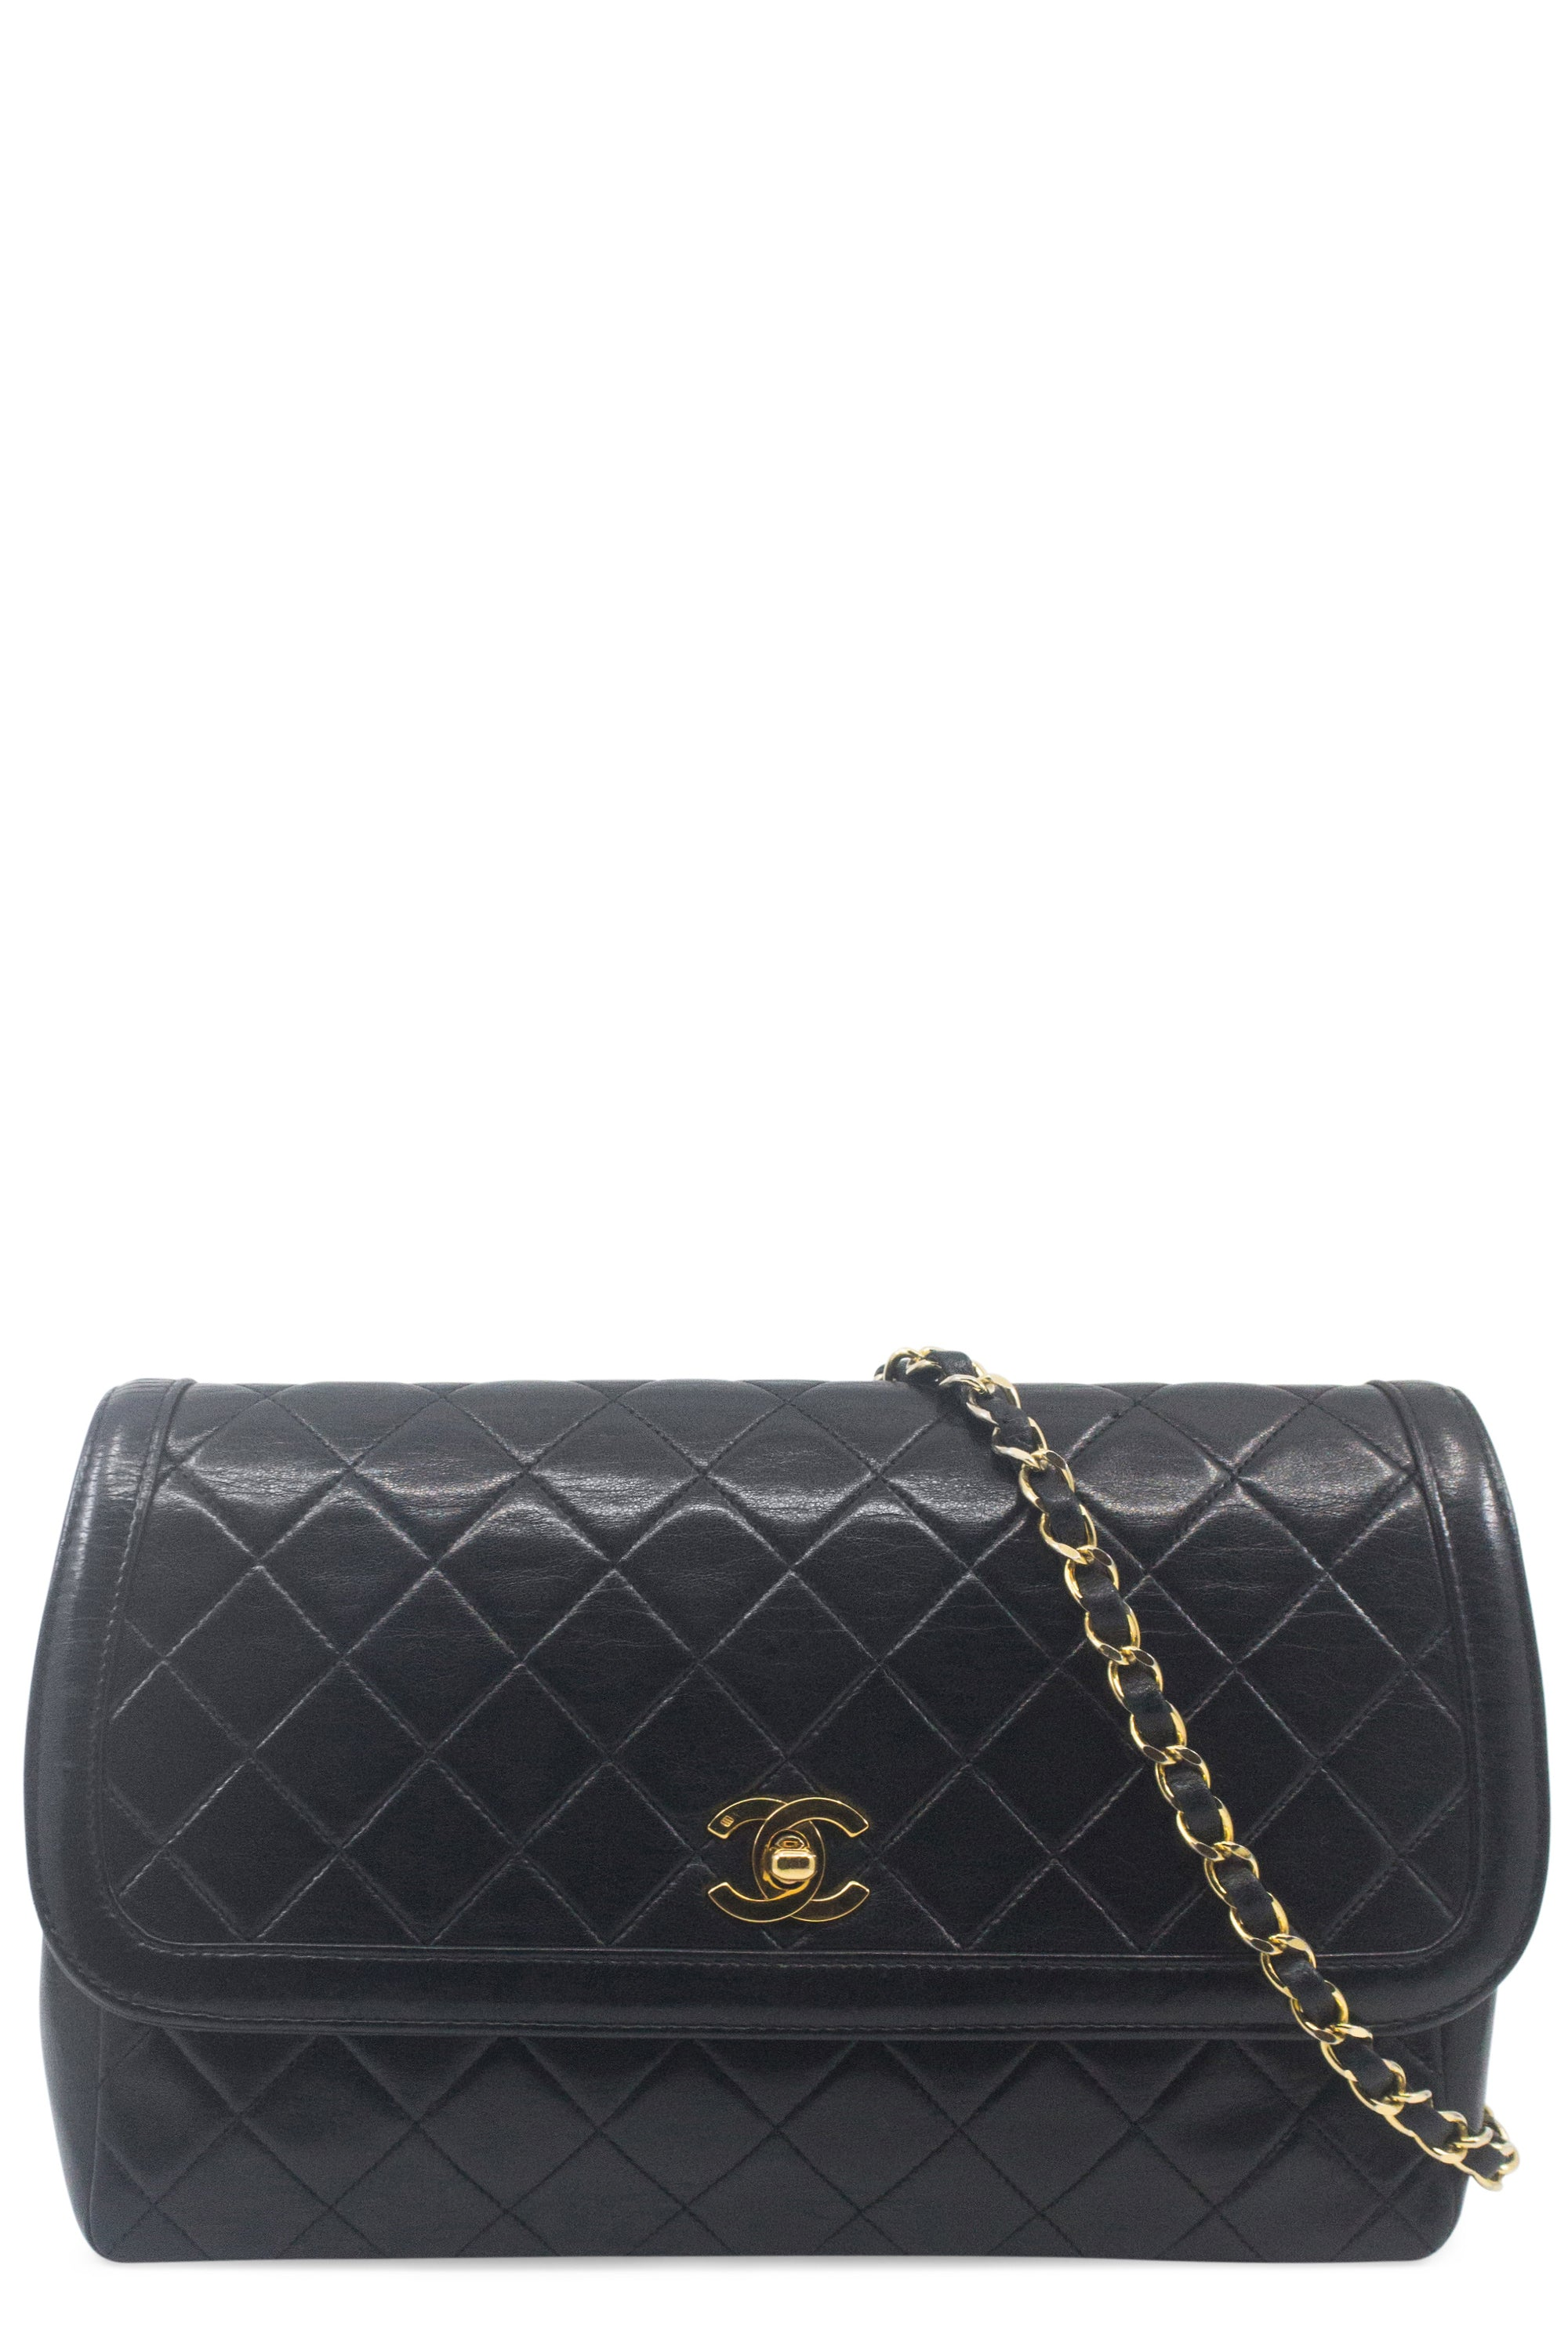 CHANEL Vintage Crossbody Flap Bag & Wallet Black Frontansicht